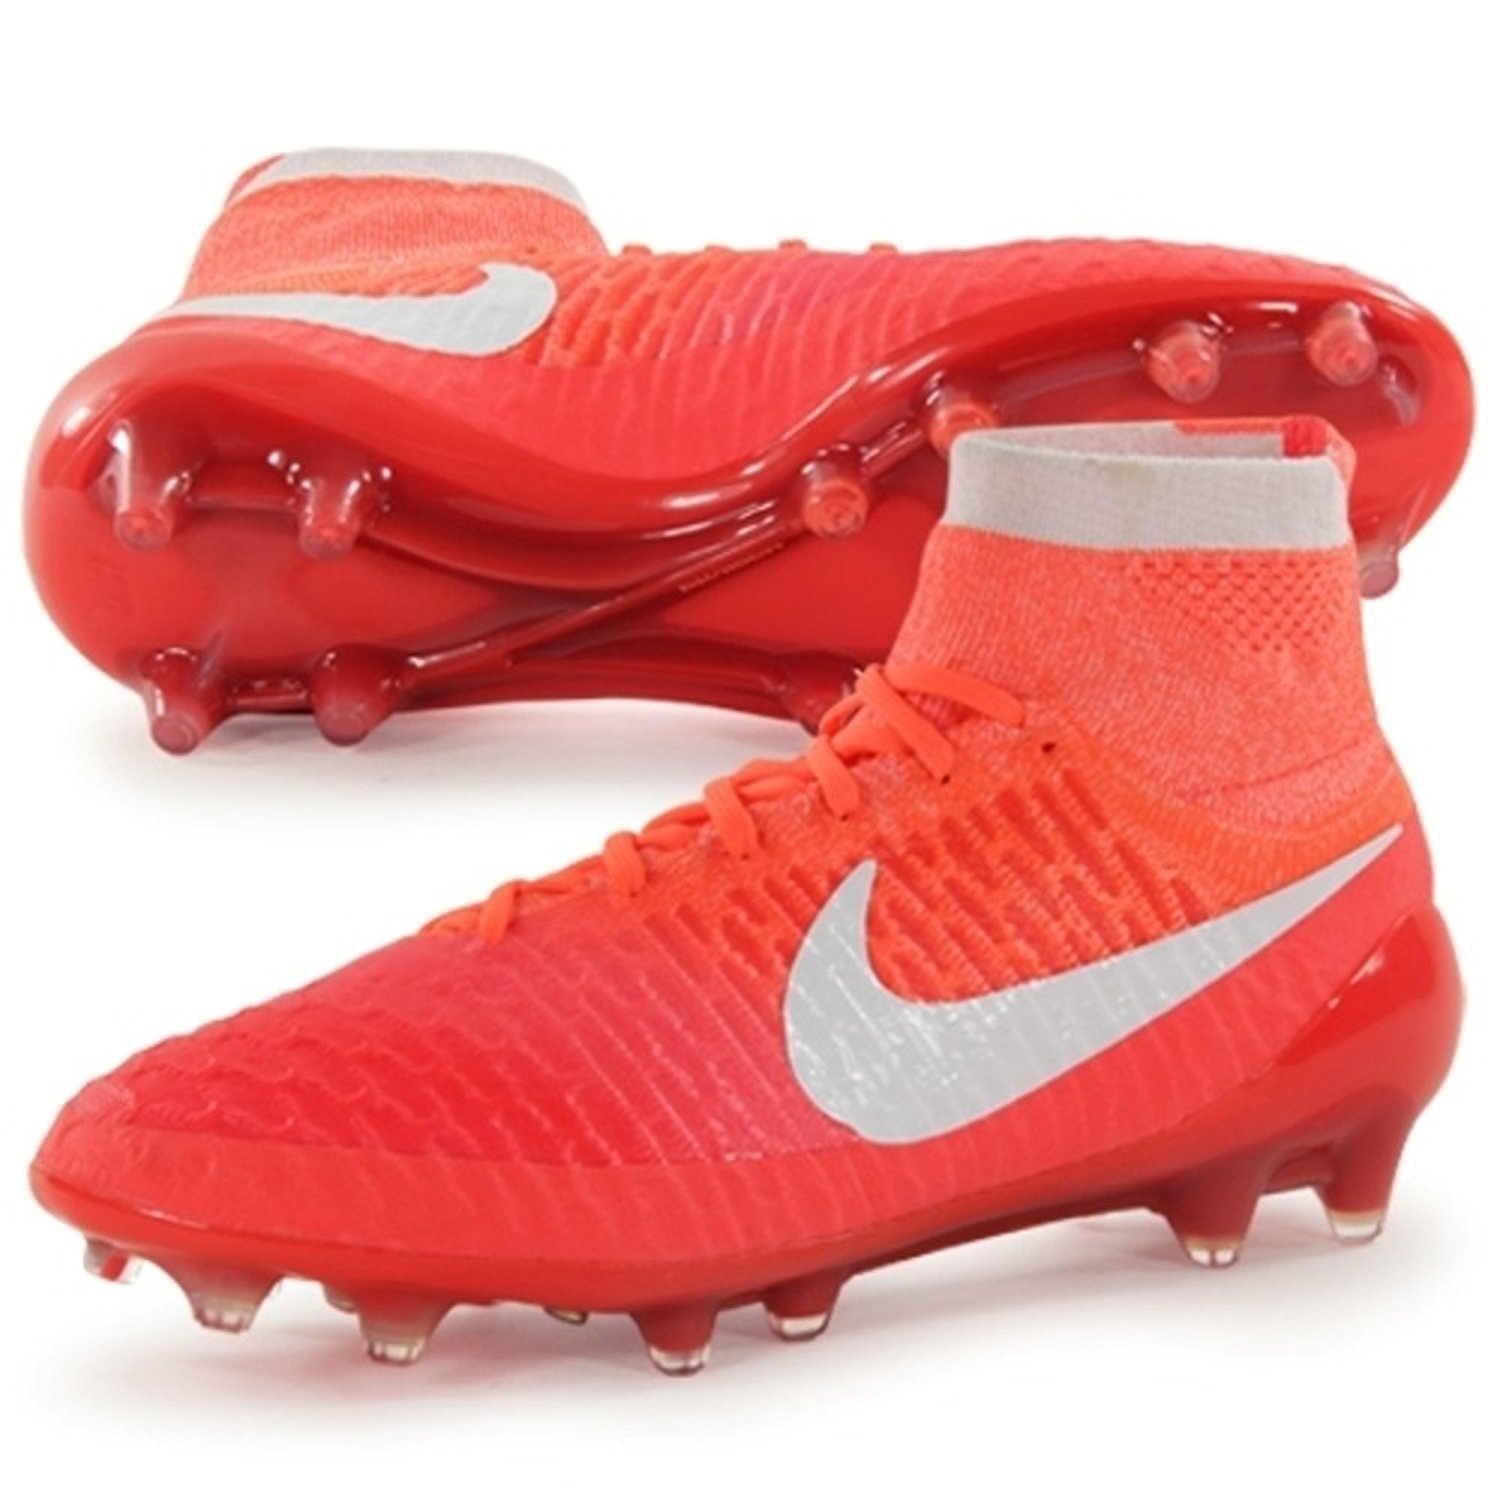 Buy NIKE WOMEN  39 S MAGISTA OBRA FG SOCCER CLEATS (BRIGHT  CRIMSON UNIVERSITY RED HYPER ORANGE WHITE) in Cheap Price on m.alibaba.com 32a9d9063